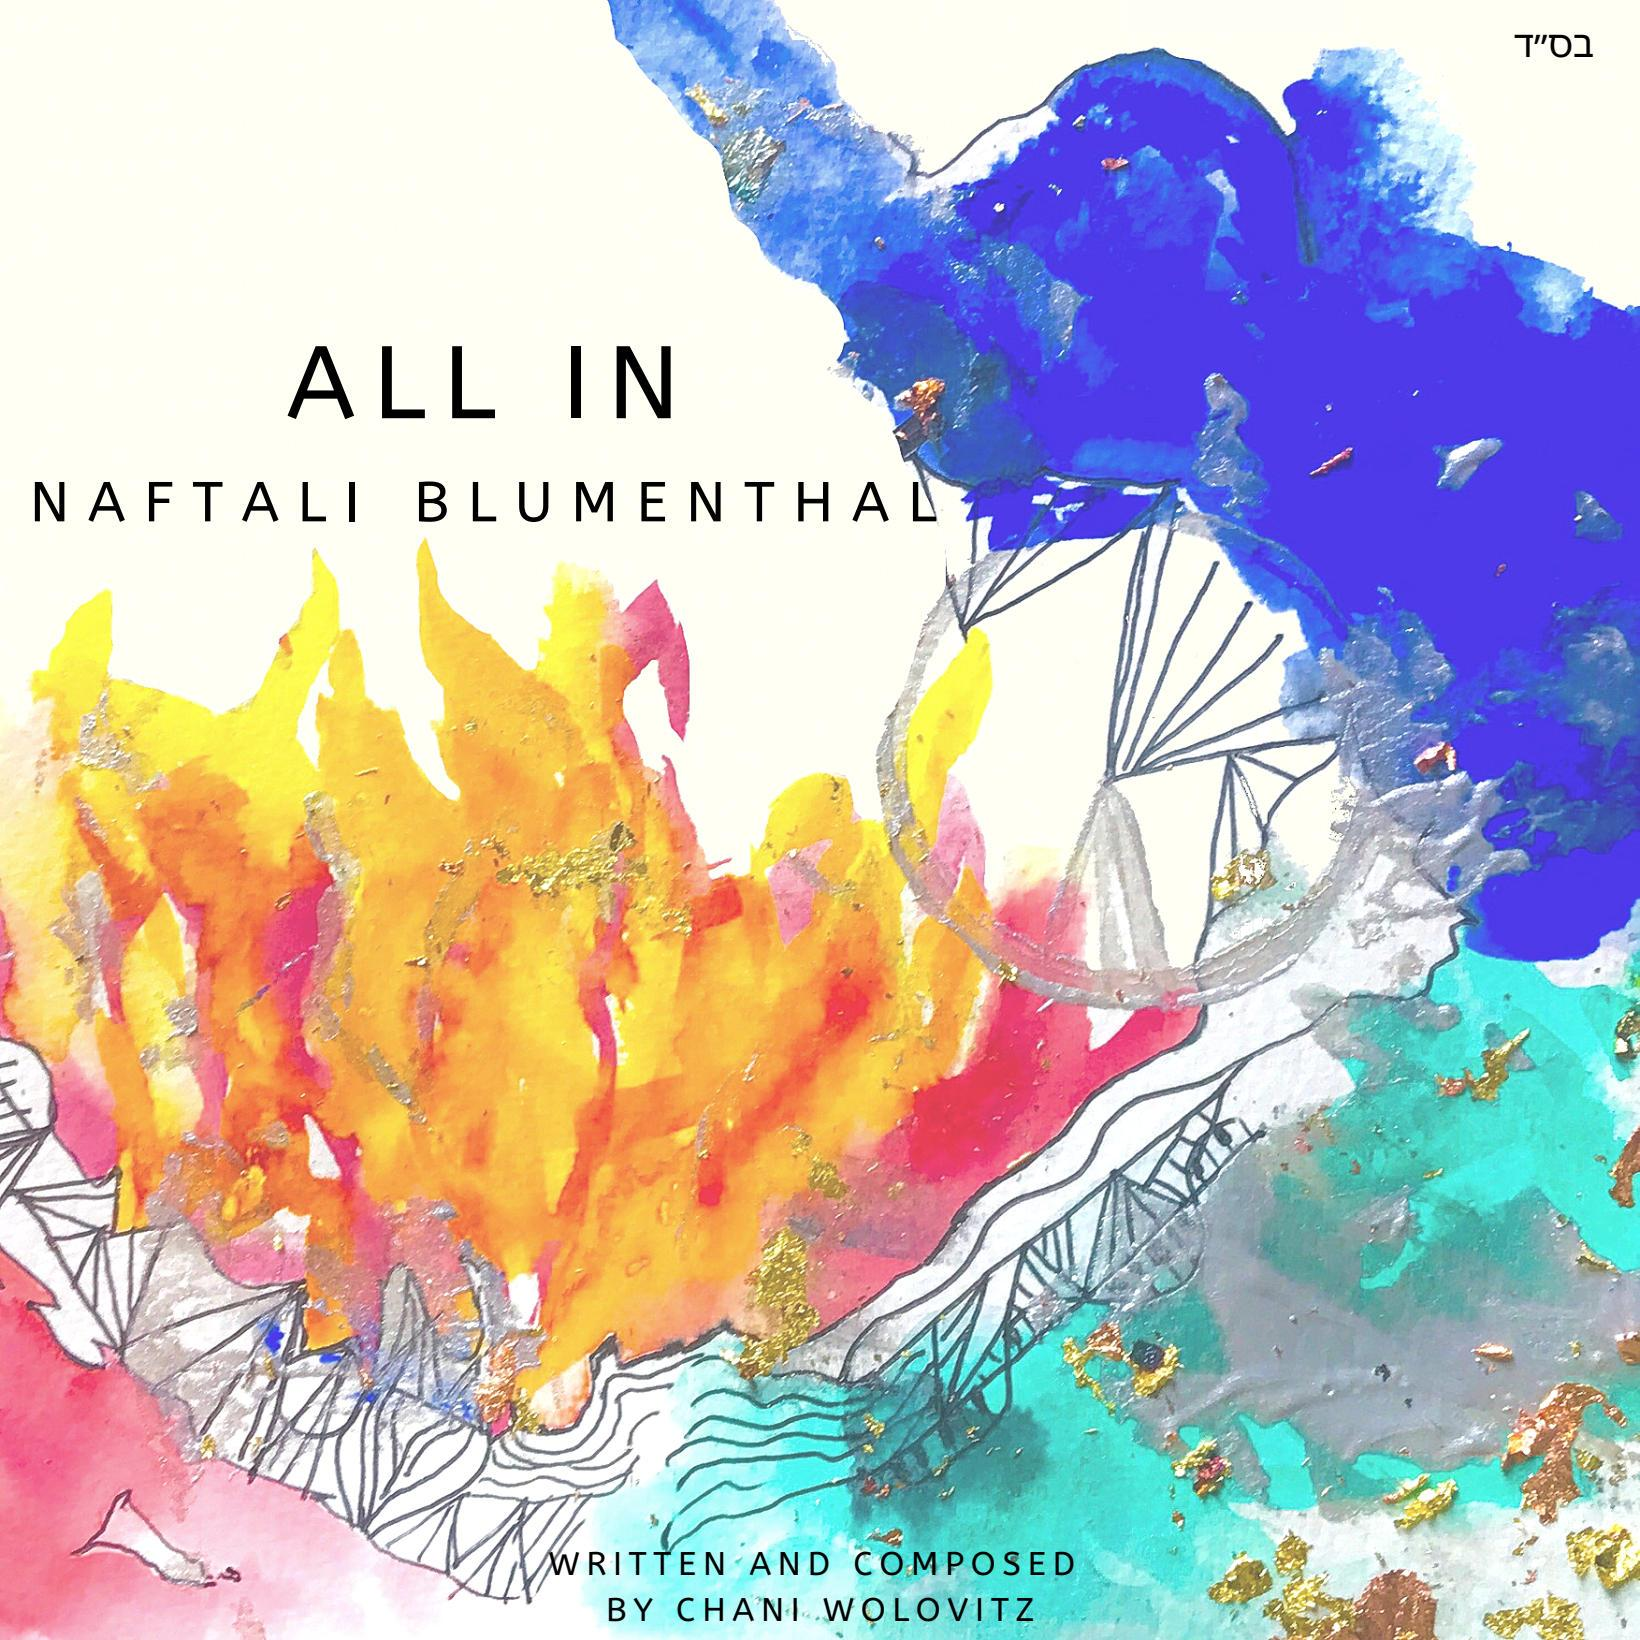 Naftali Blumenthal - All In (Single)